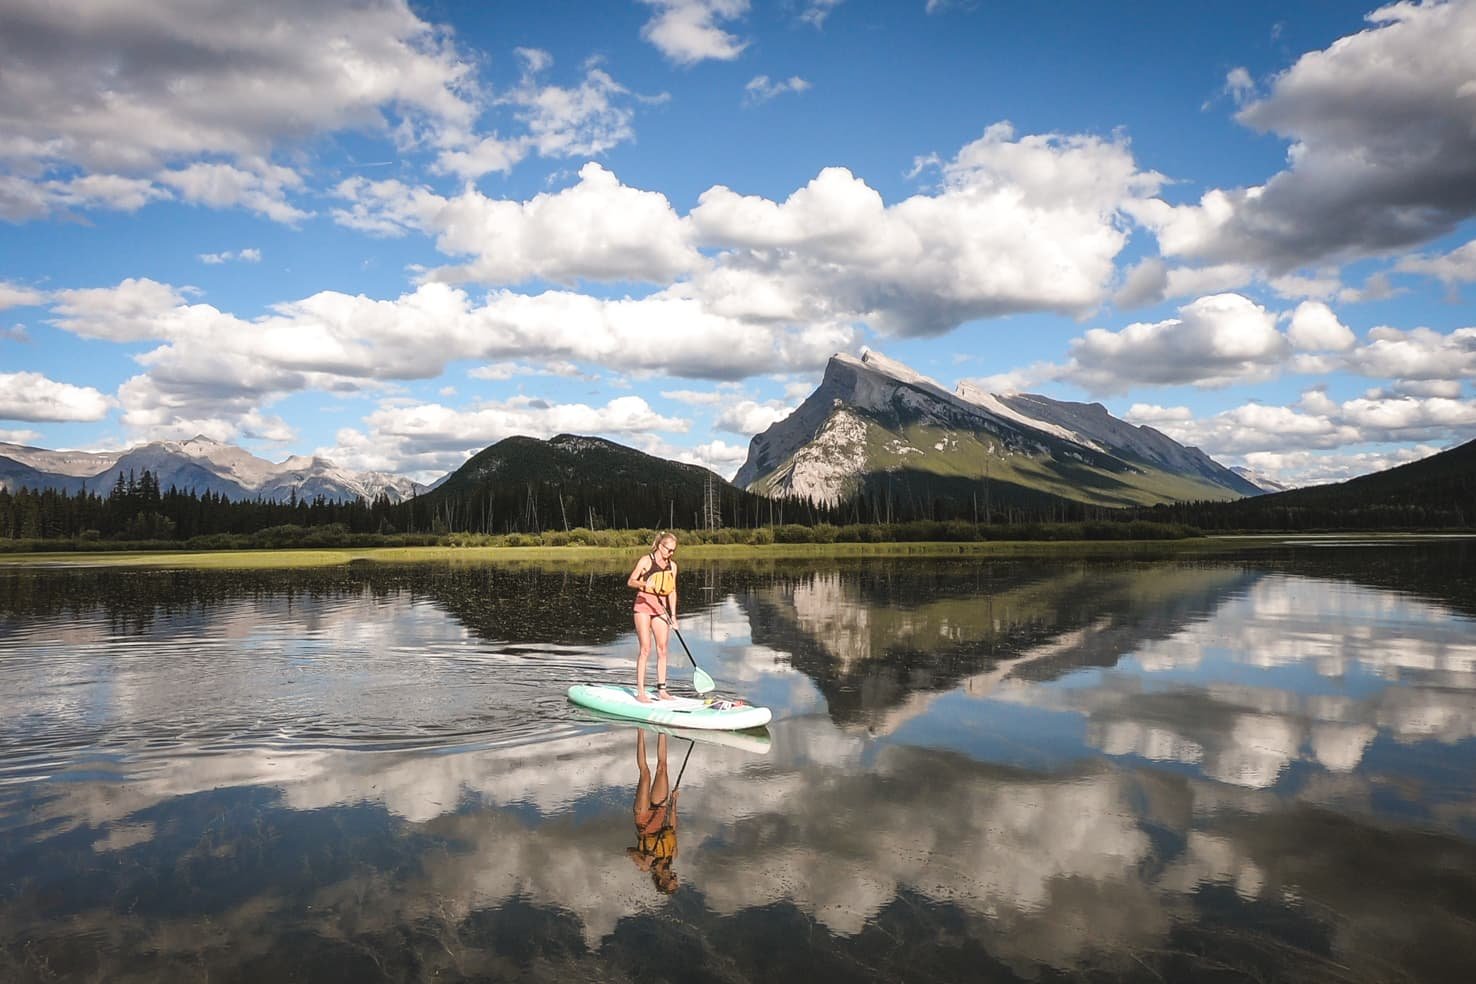 Banff on a budget - stand up paddleboarding on Vermilion Lakes